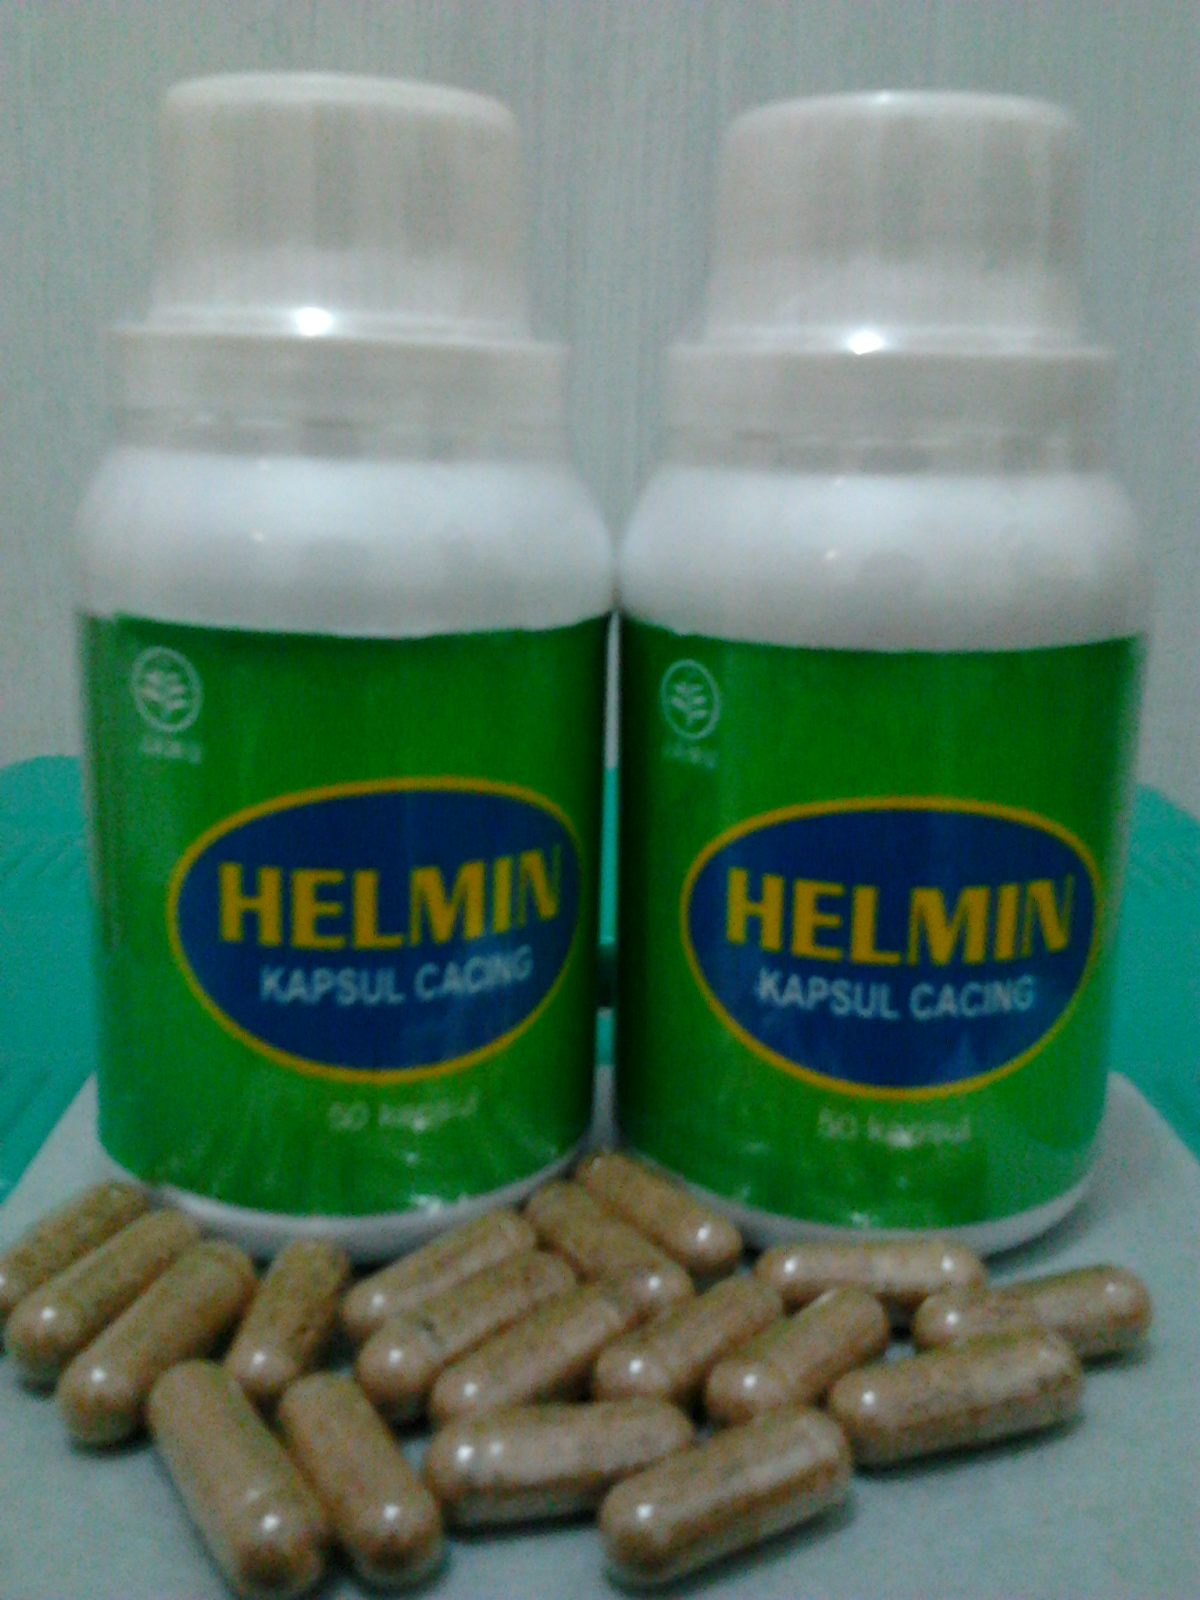 Jaya Abadi Herbal: helmin Kapsul (kapsul Cacing)